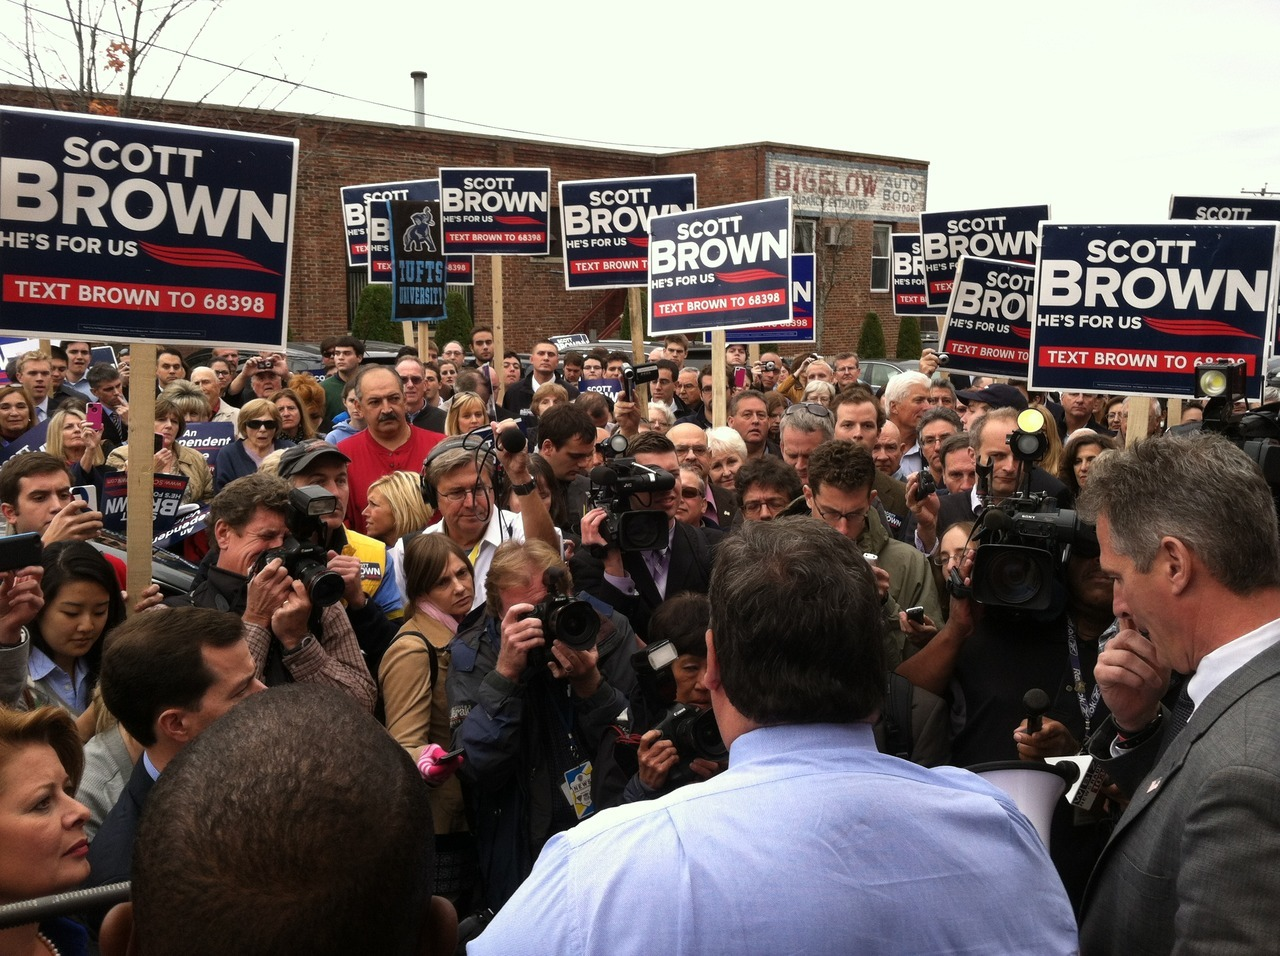 Gov Christie campaigning for Scott Brown In MA today